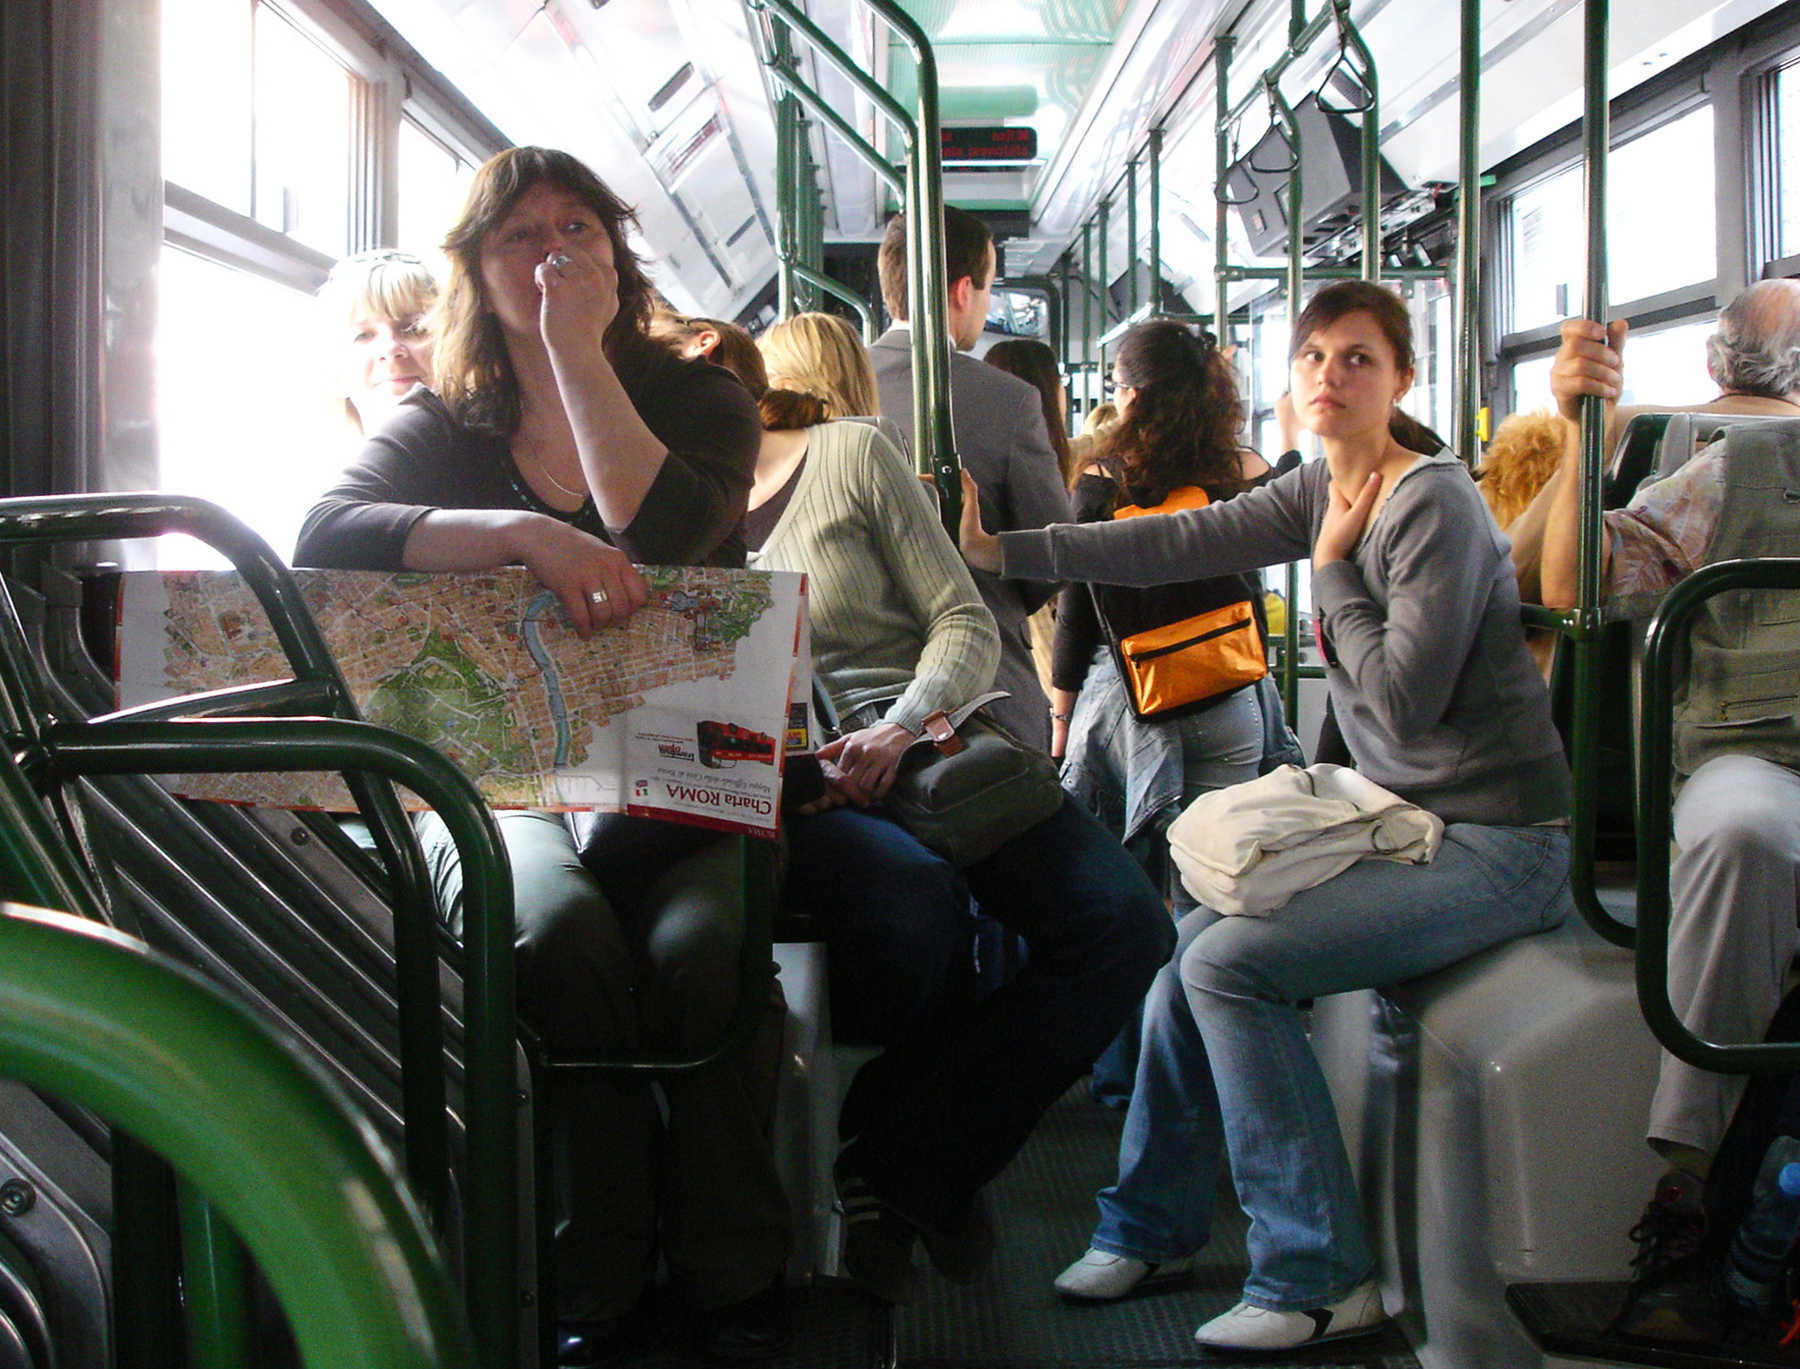 Bus Riders Vulnerable to Pickpockets, Rome, Italy